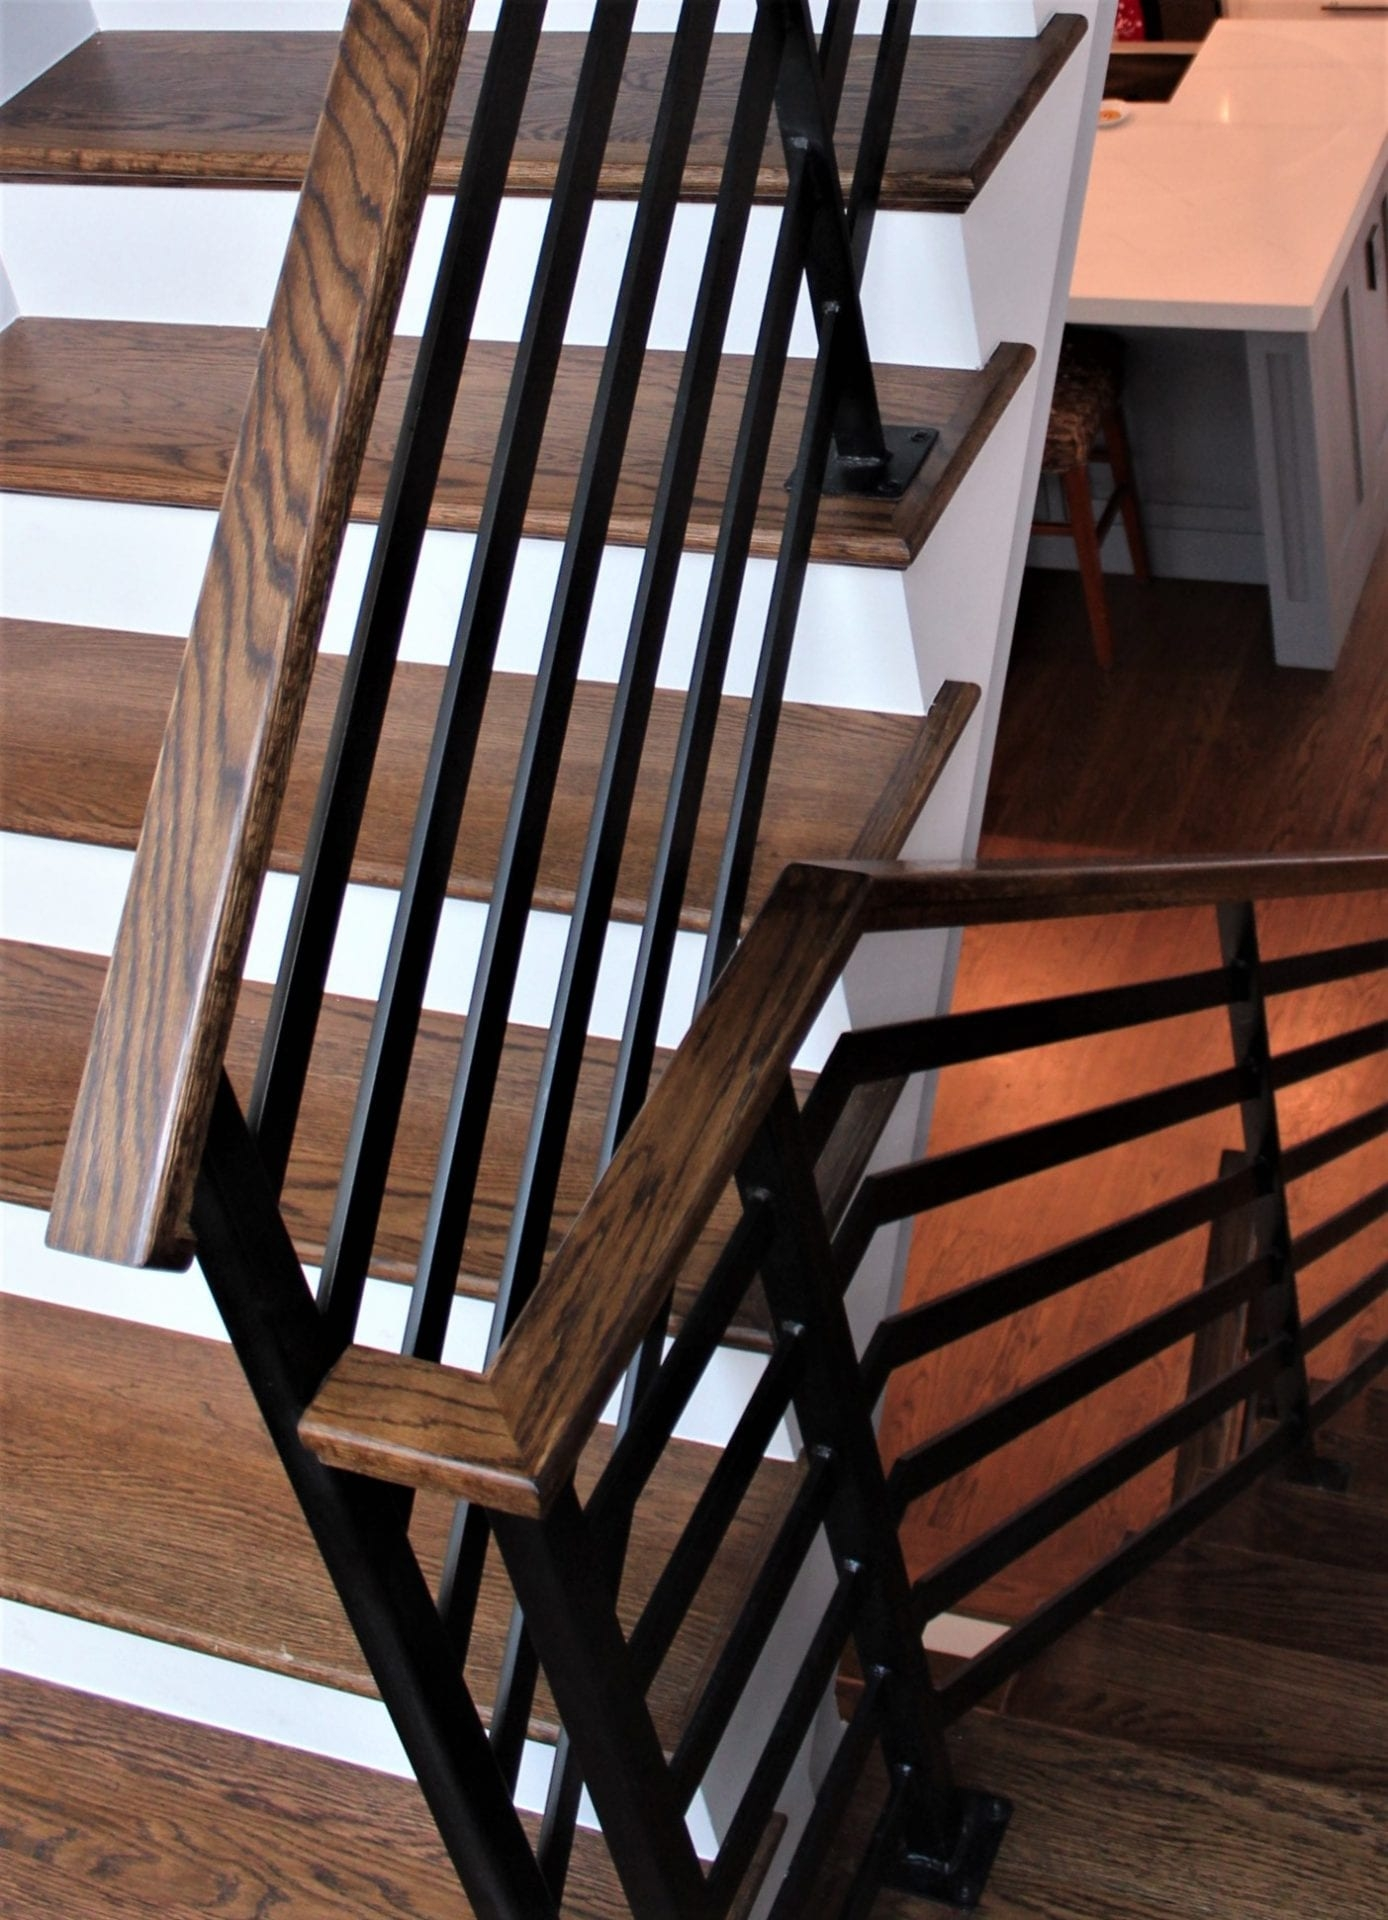 Flat Bar Horizontal Rail With Wood Top Great Lakes Metal Fabrication | Wood And Metal Handrail | Interior | Iron Railing | Architectural Modern Wood Stair | Stainless Steel | Traditional